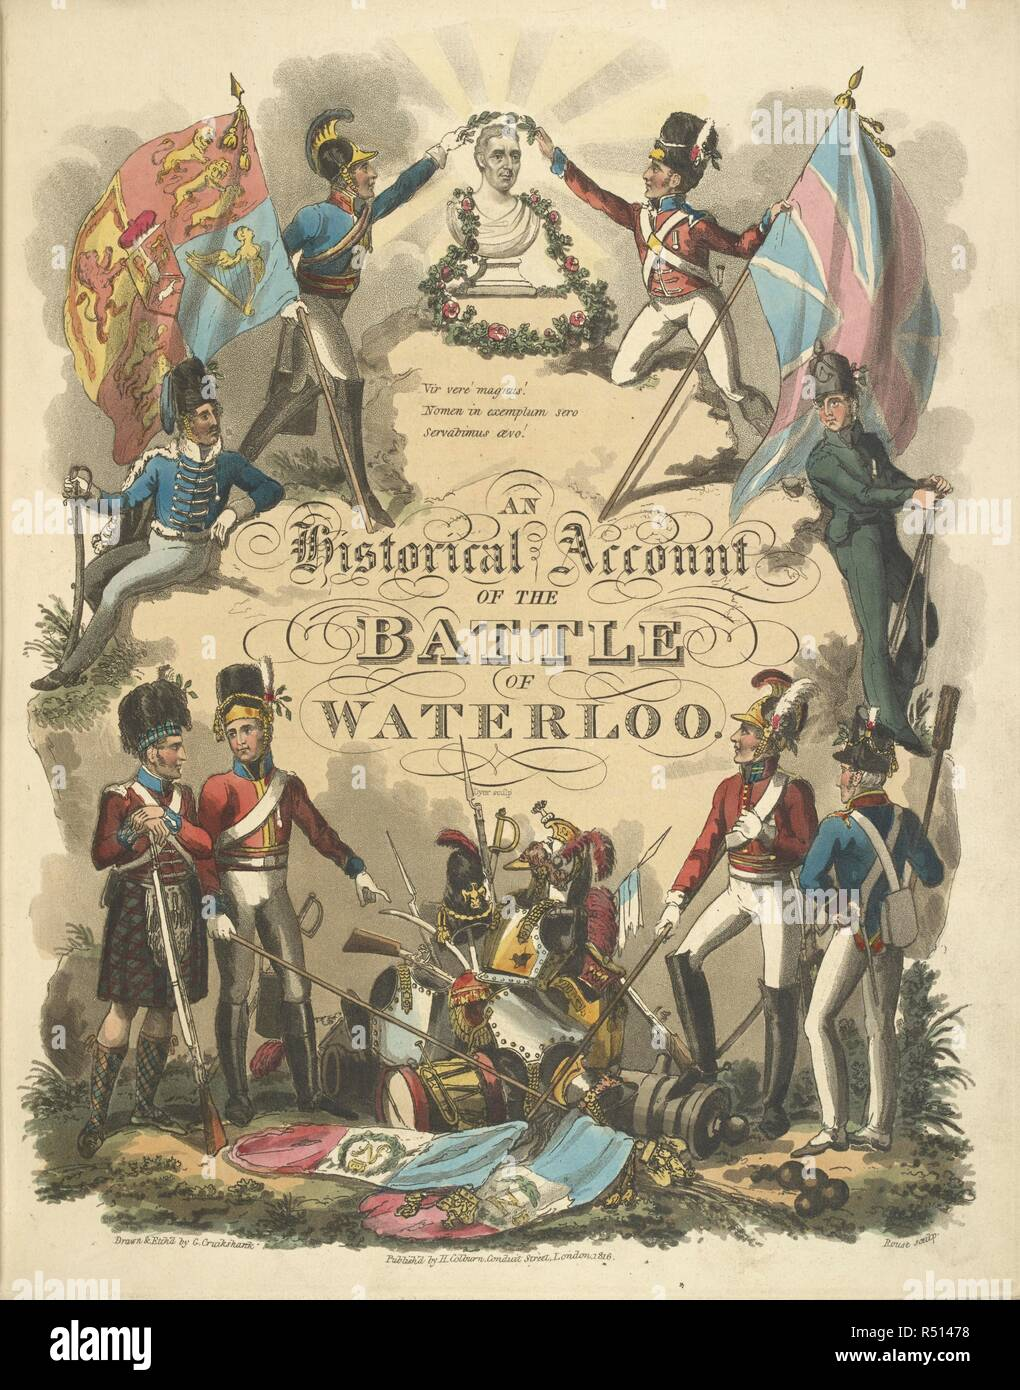 Illustrated title page depicting various British soldiers. An Historical Account of the Campaign in the Netherlands, in 1815, under His Grace the Duke of Wellington, and Marshal Prince Blucher, comprising the battles of Ligny, Quatrebras, and Waterloo; with a detailed narrative of the political events connected with those memorable conflicts down to the surrender of Paris, and the departure of Bonaparte for St. Helena ... Embellished with ... plates ... from drawings ... by James Rouse. London : Henry Colburn, 1817. Source: 193.e.9 Title Page. - Stock Image